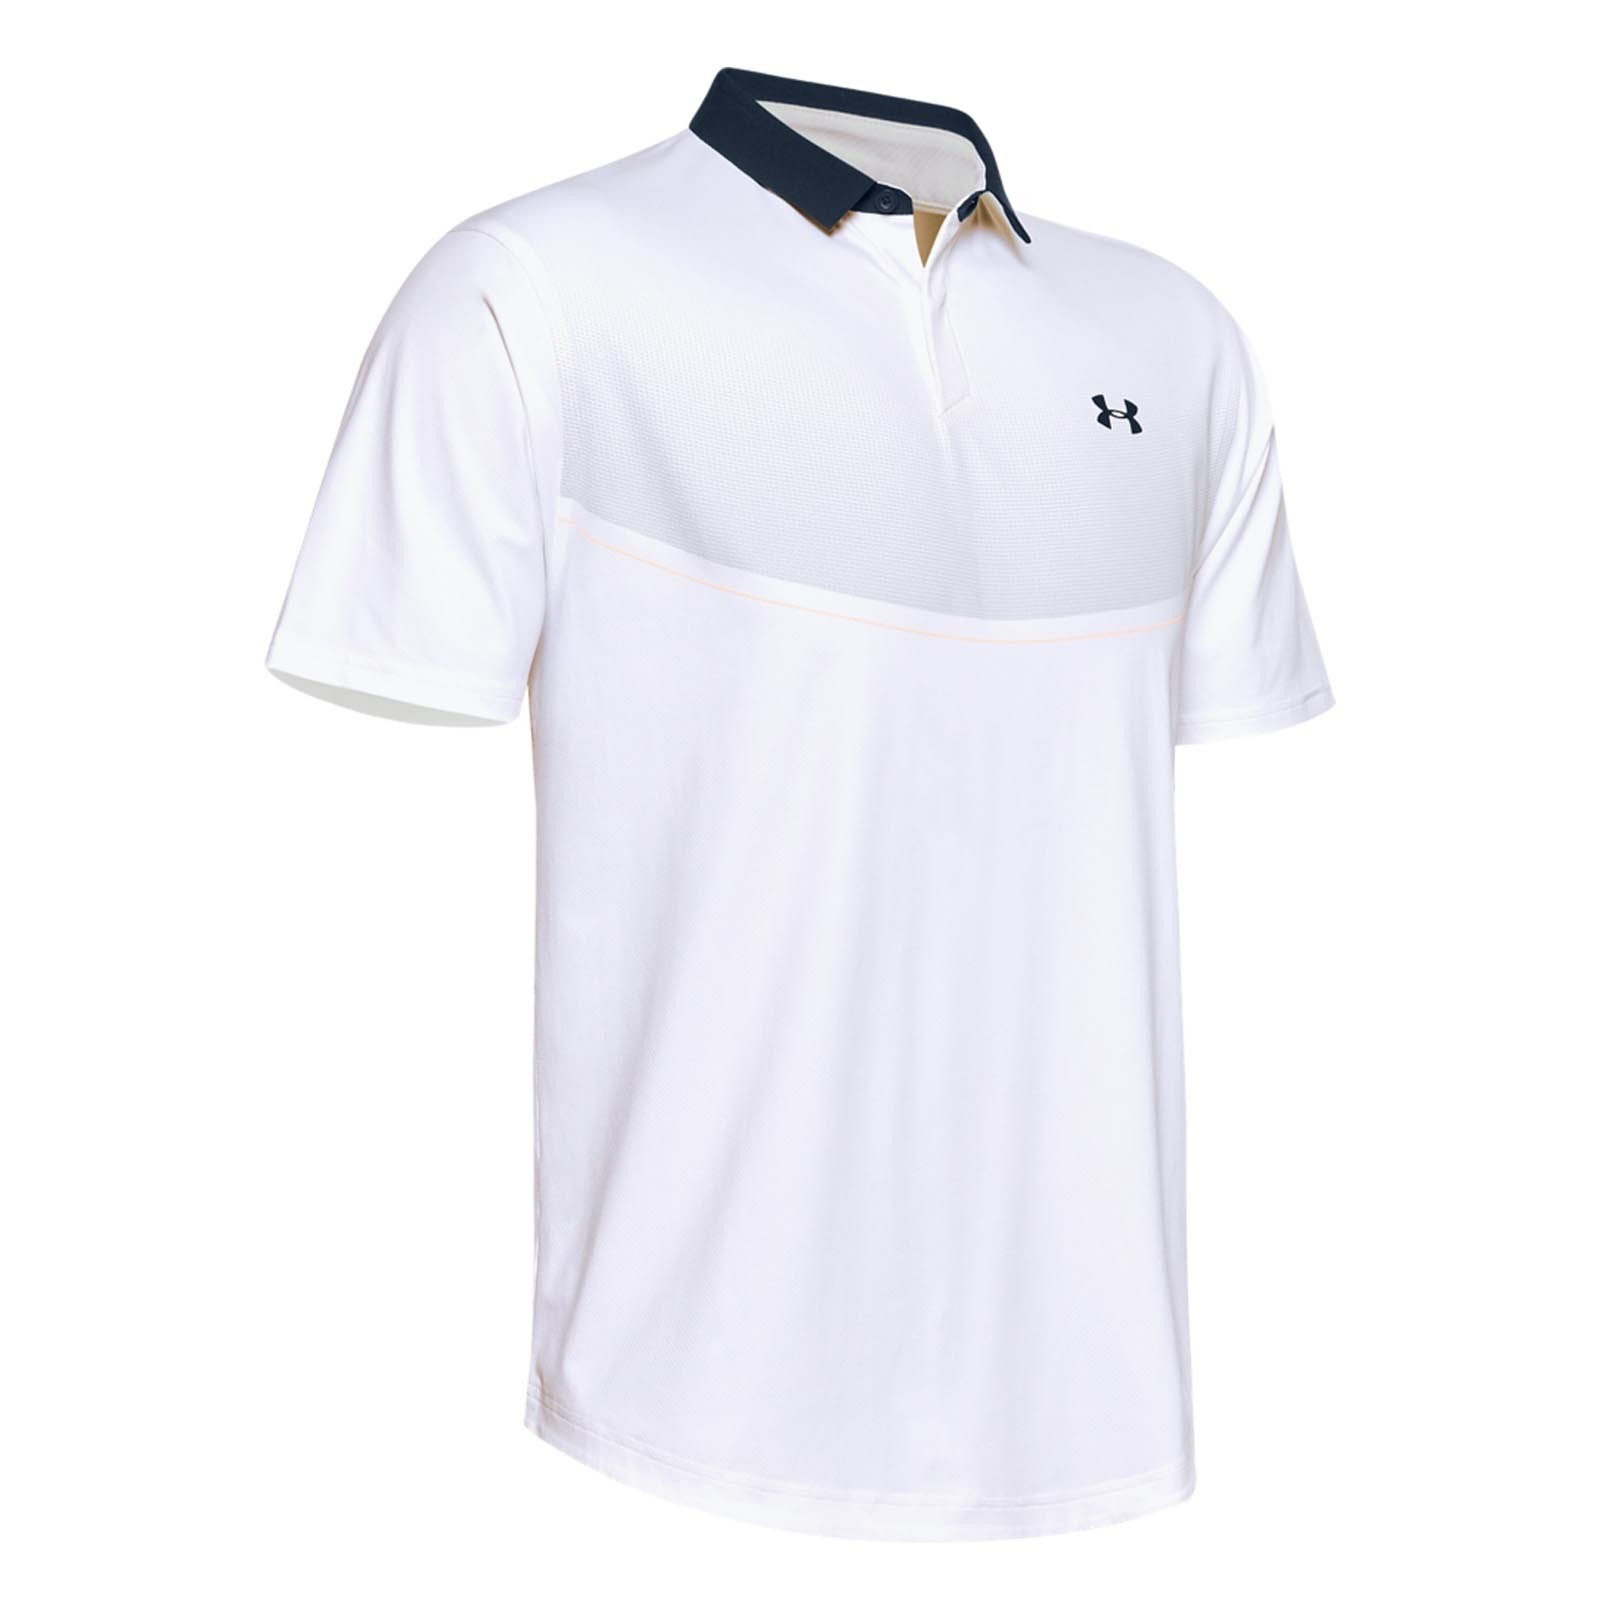 Under Armour Iso-Chill Graphic Polo